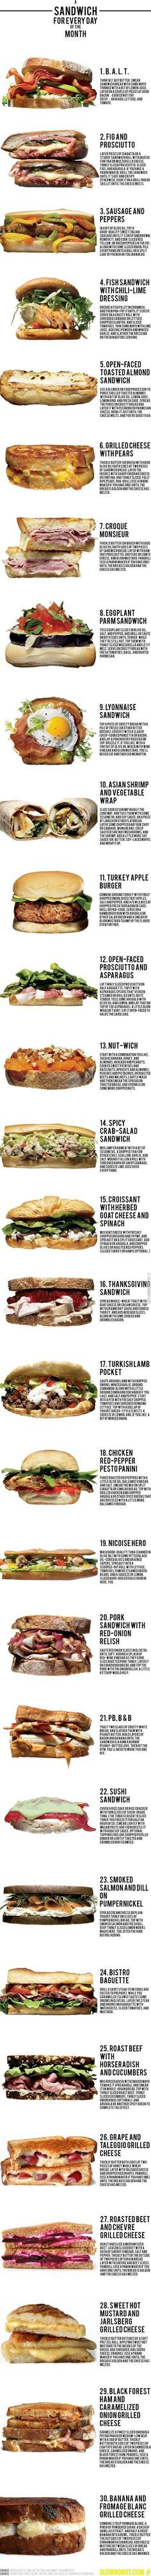 30 incredible sandwich recipes for every day of the month